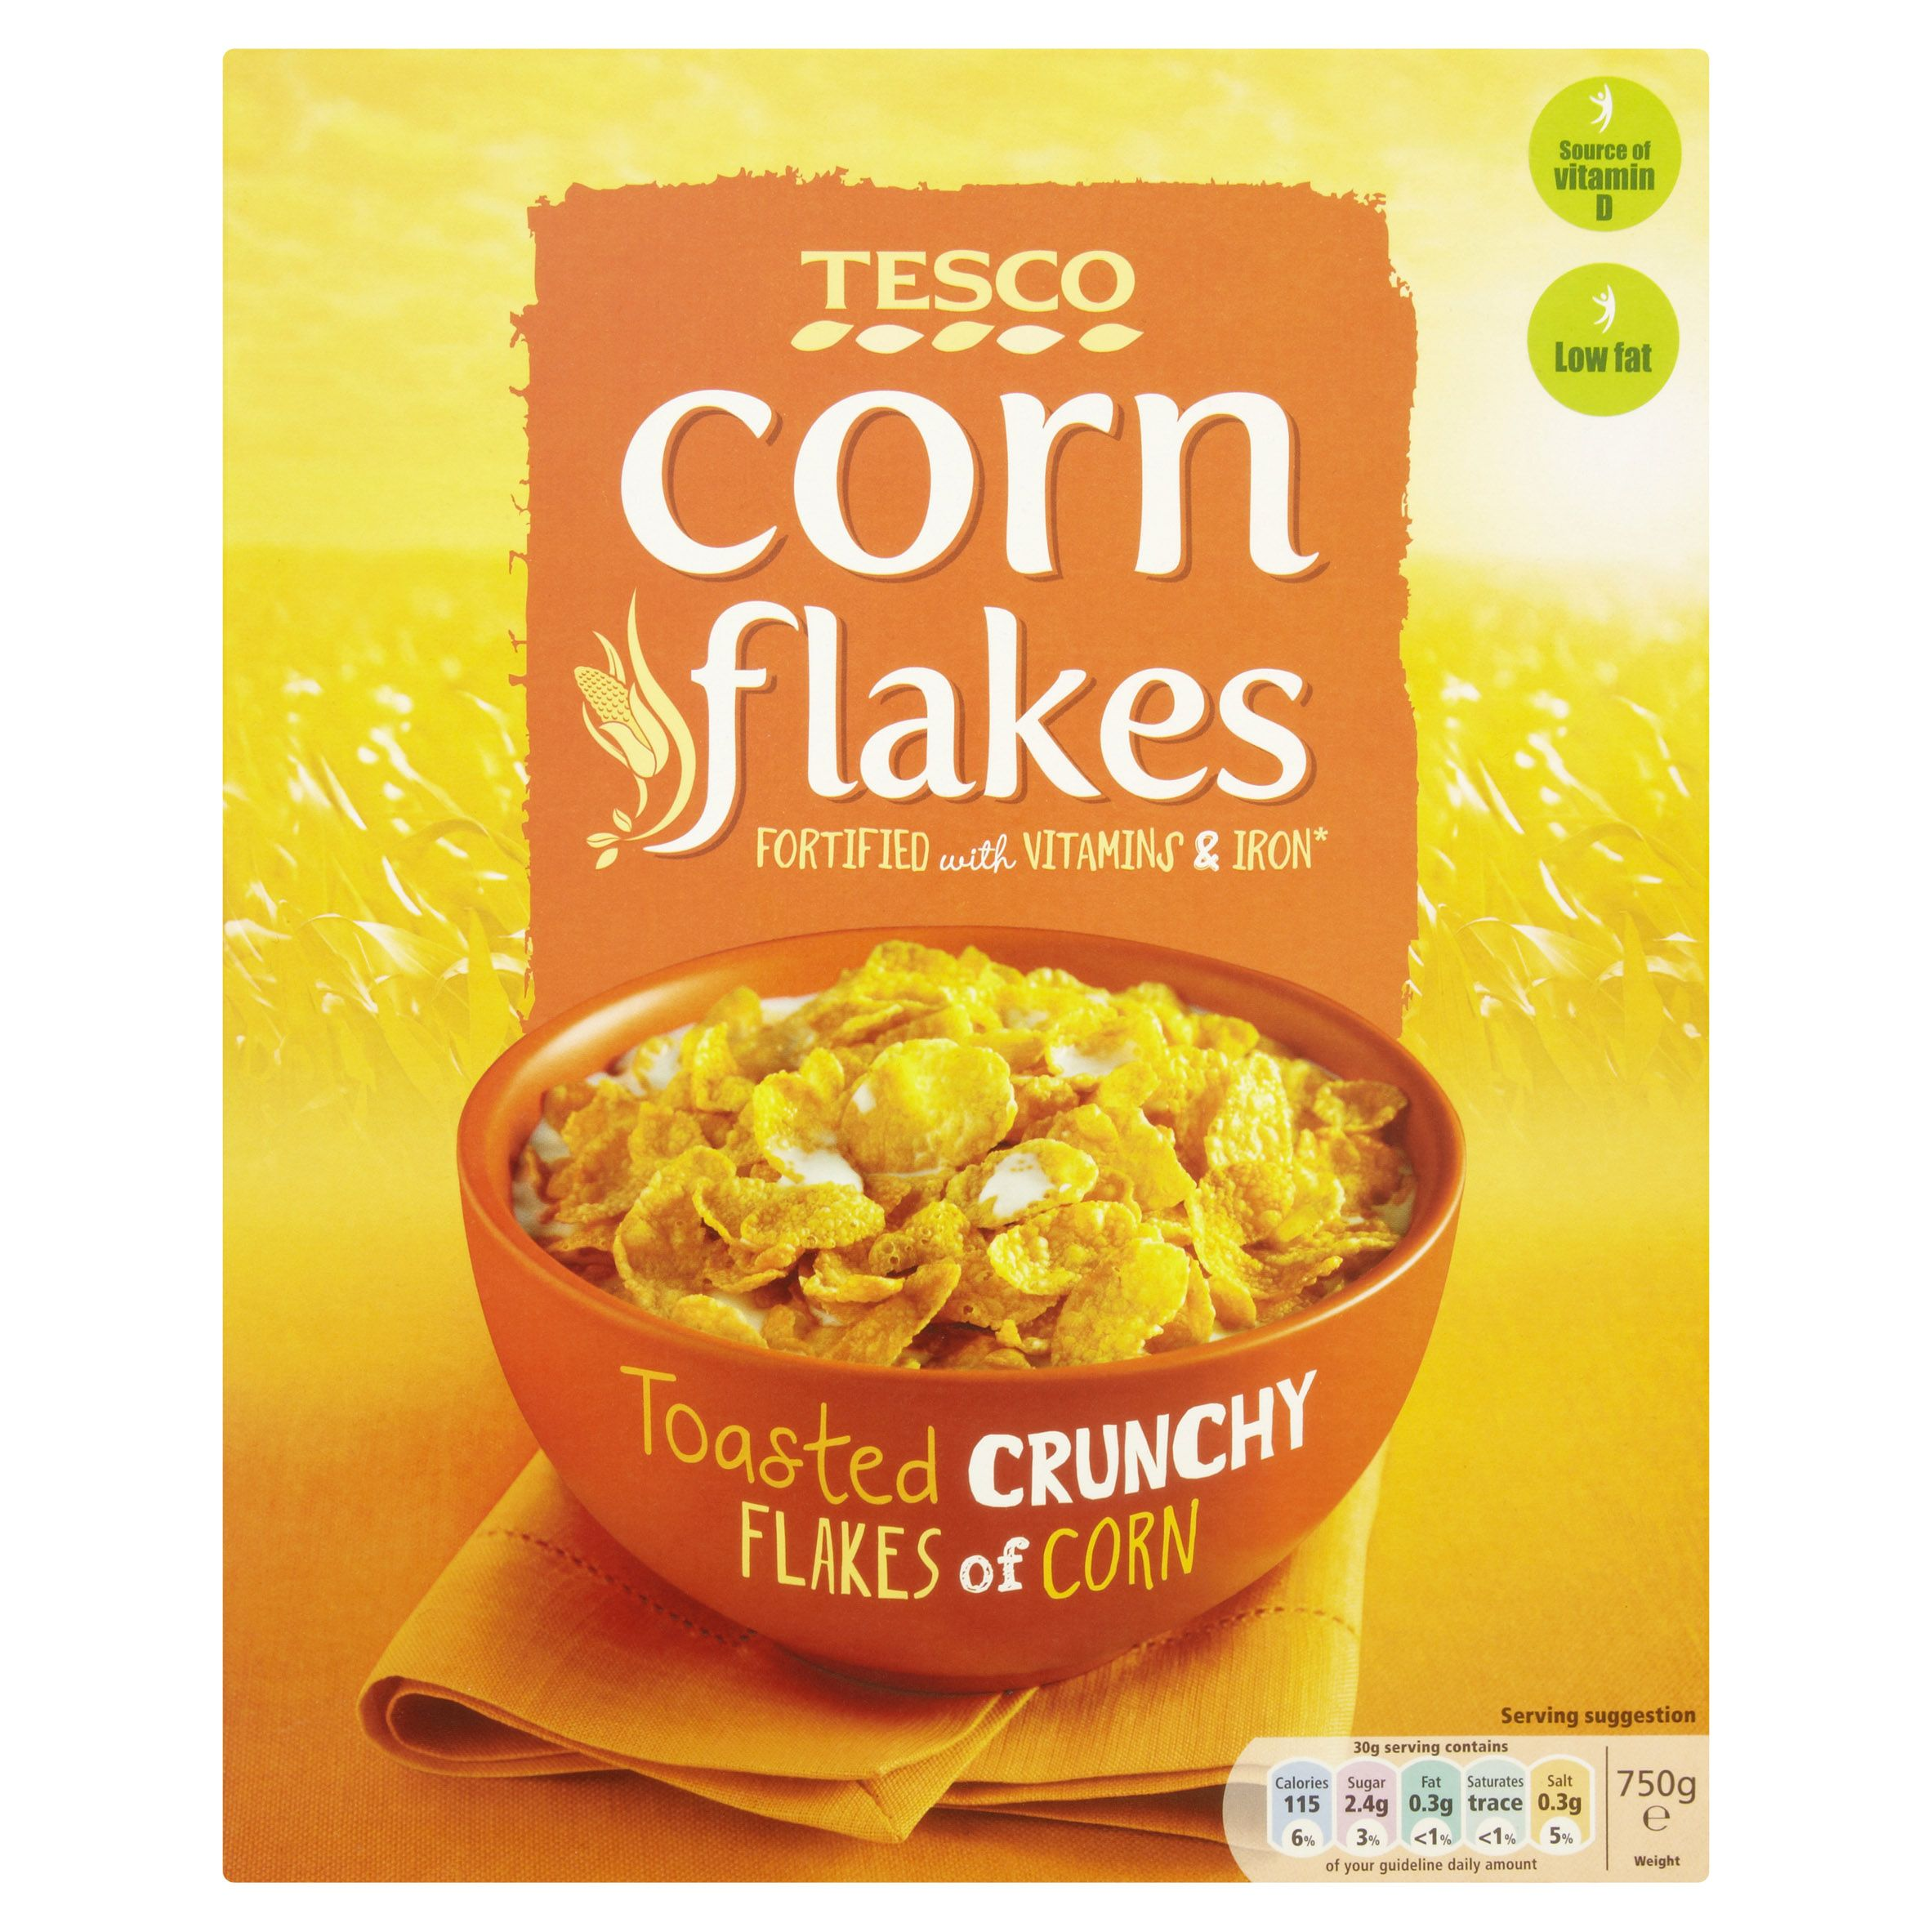 Tesco Corn Flakes Toasted Crunchy Flakes Of Corn Dog Food Recipes Corn Flakes Tesco Groceries